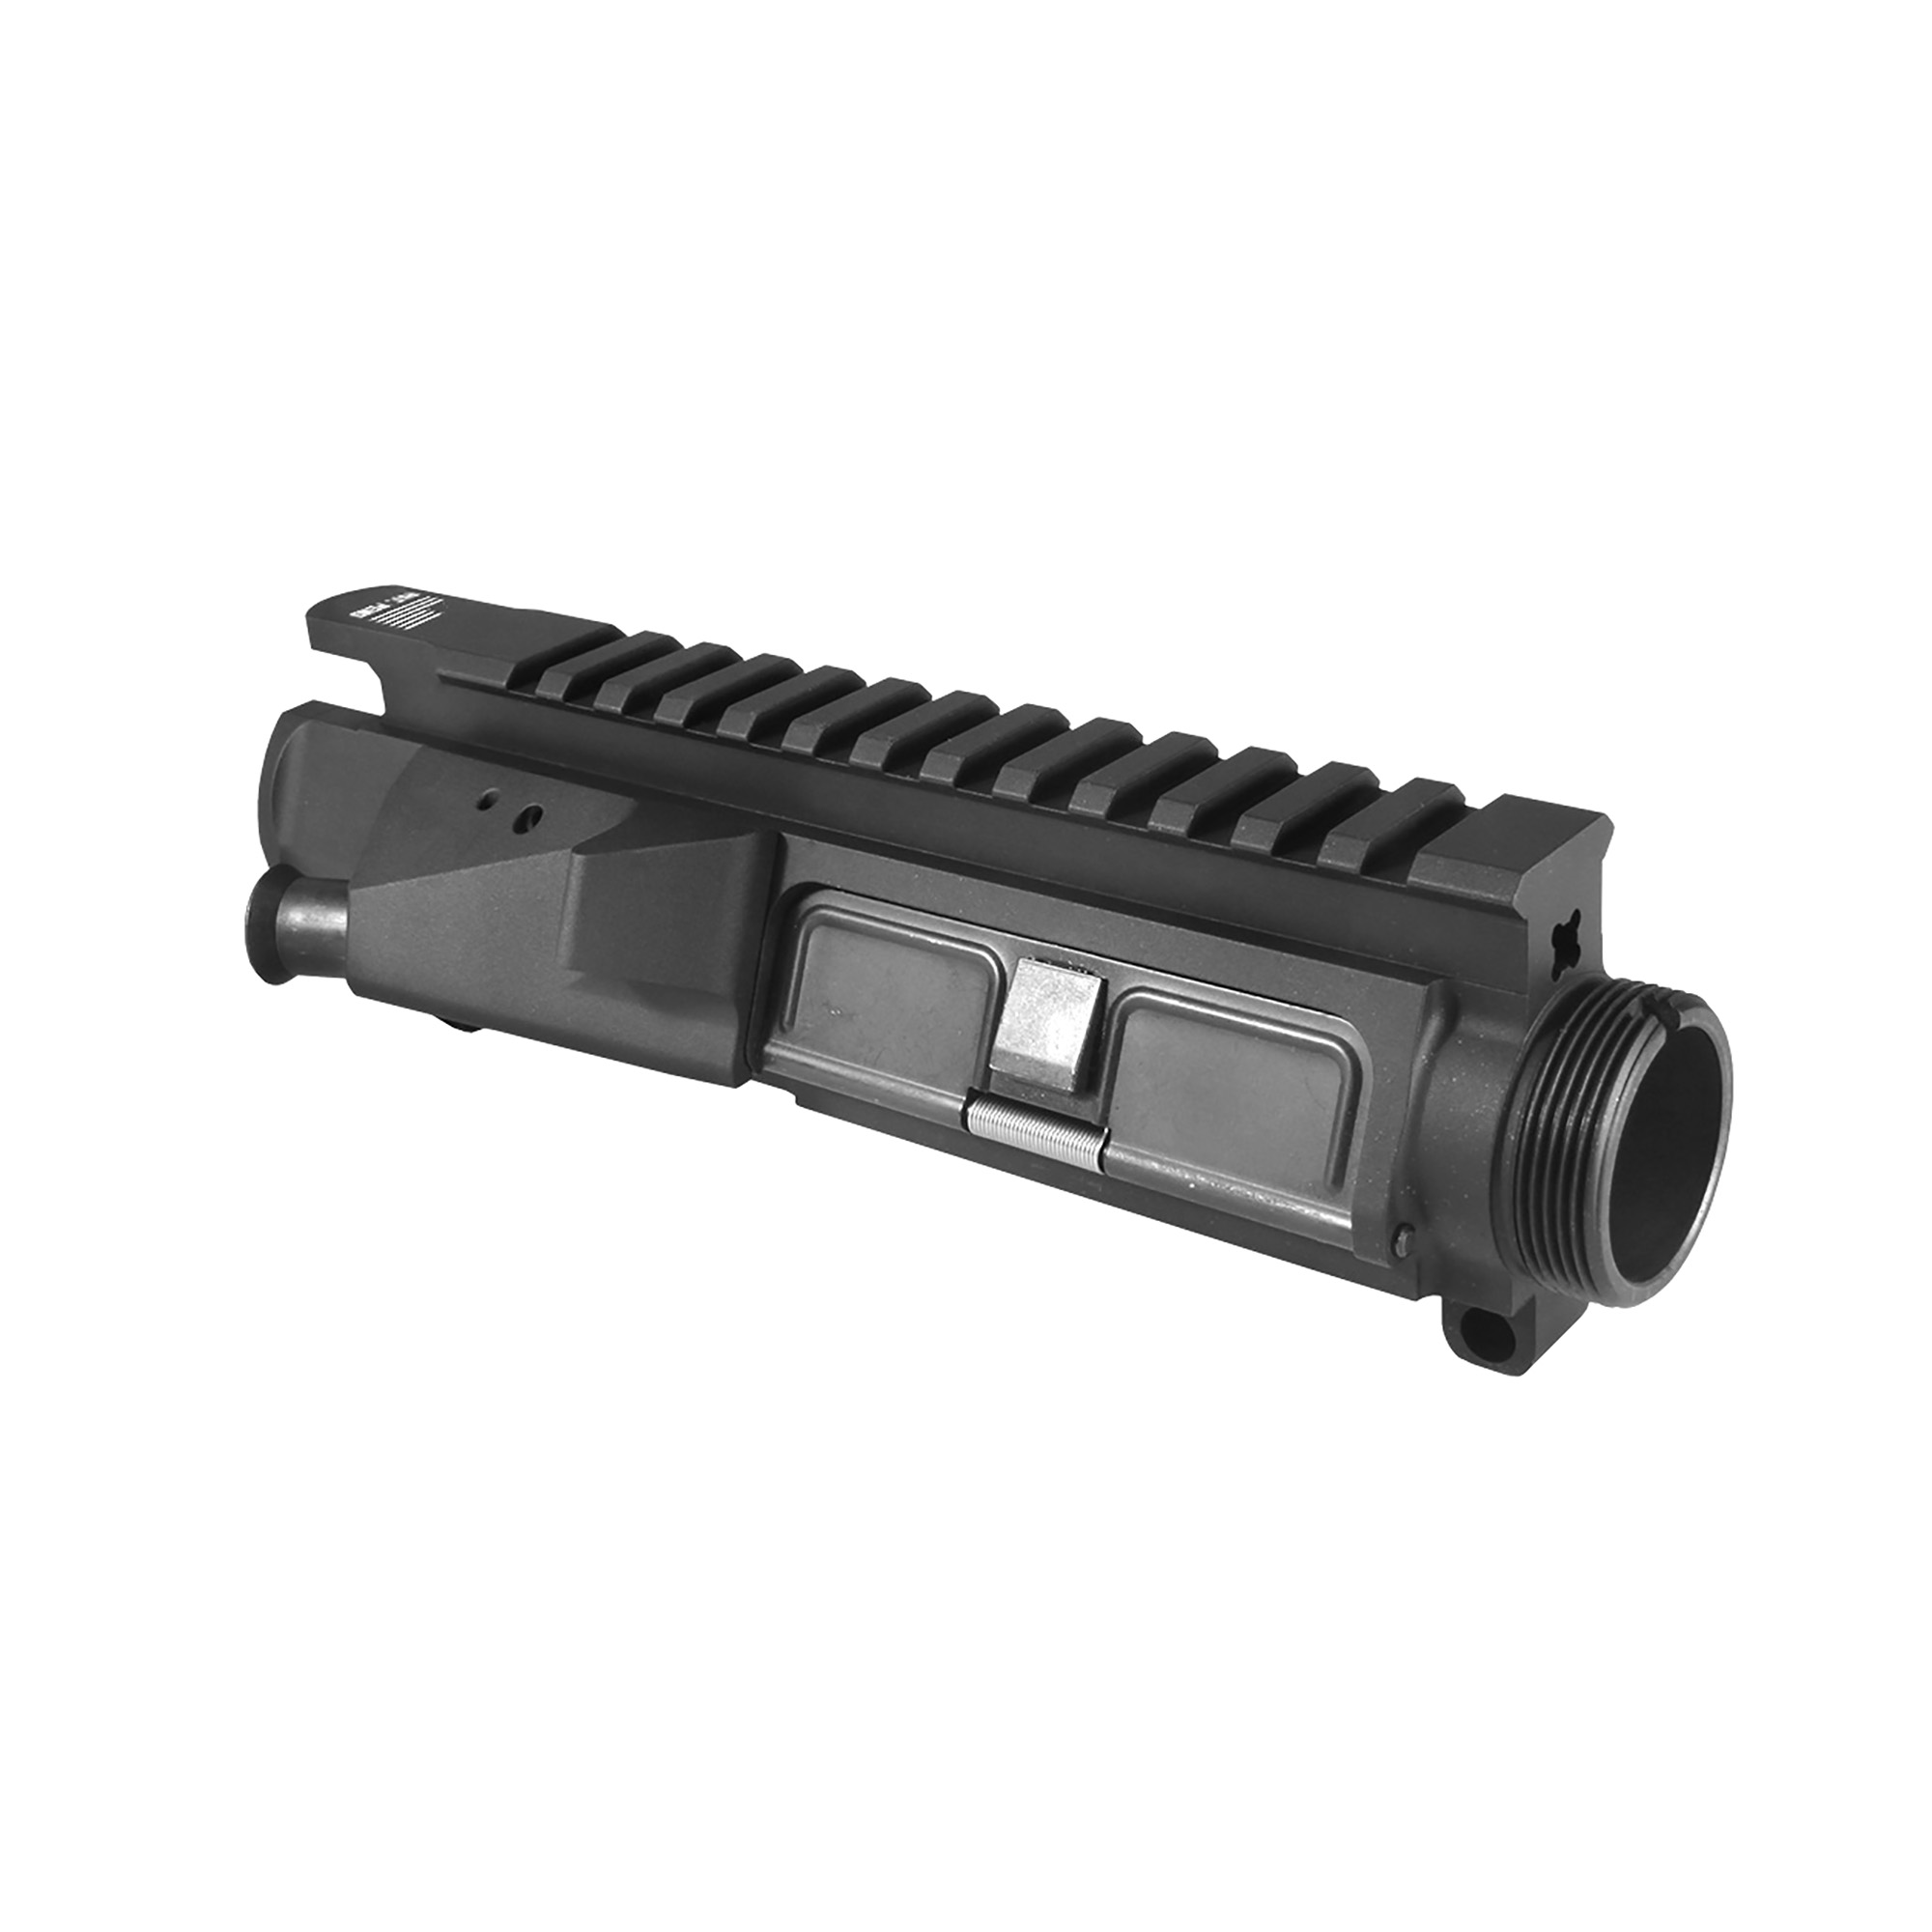 """The MUR is a rigid Mil-Spec flat-top upper made to fit all AR15/M16 M4 rifles and carbines. The MUR was developed to give the customer a Mil-Spec correct upper receiver with a thicker wall"""" making the MUR upper receiver a stronger platform. This more rigid upper receiver will increase accuracy and reliability"""" while extending the life of the interfacing components. The MUR-1A model comes equipped with a shell deflector and forward assist. The MUR-1S comes with a one-piece machined shell deflector only."""